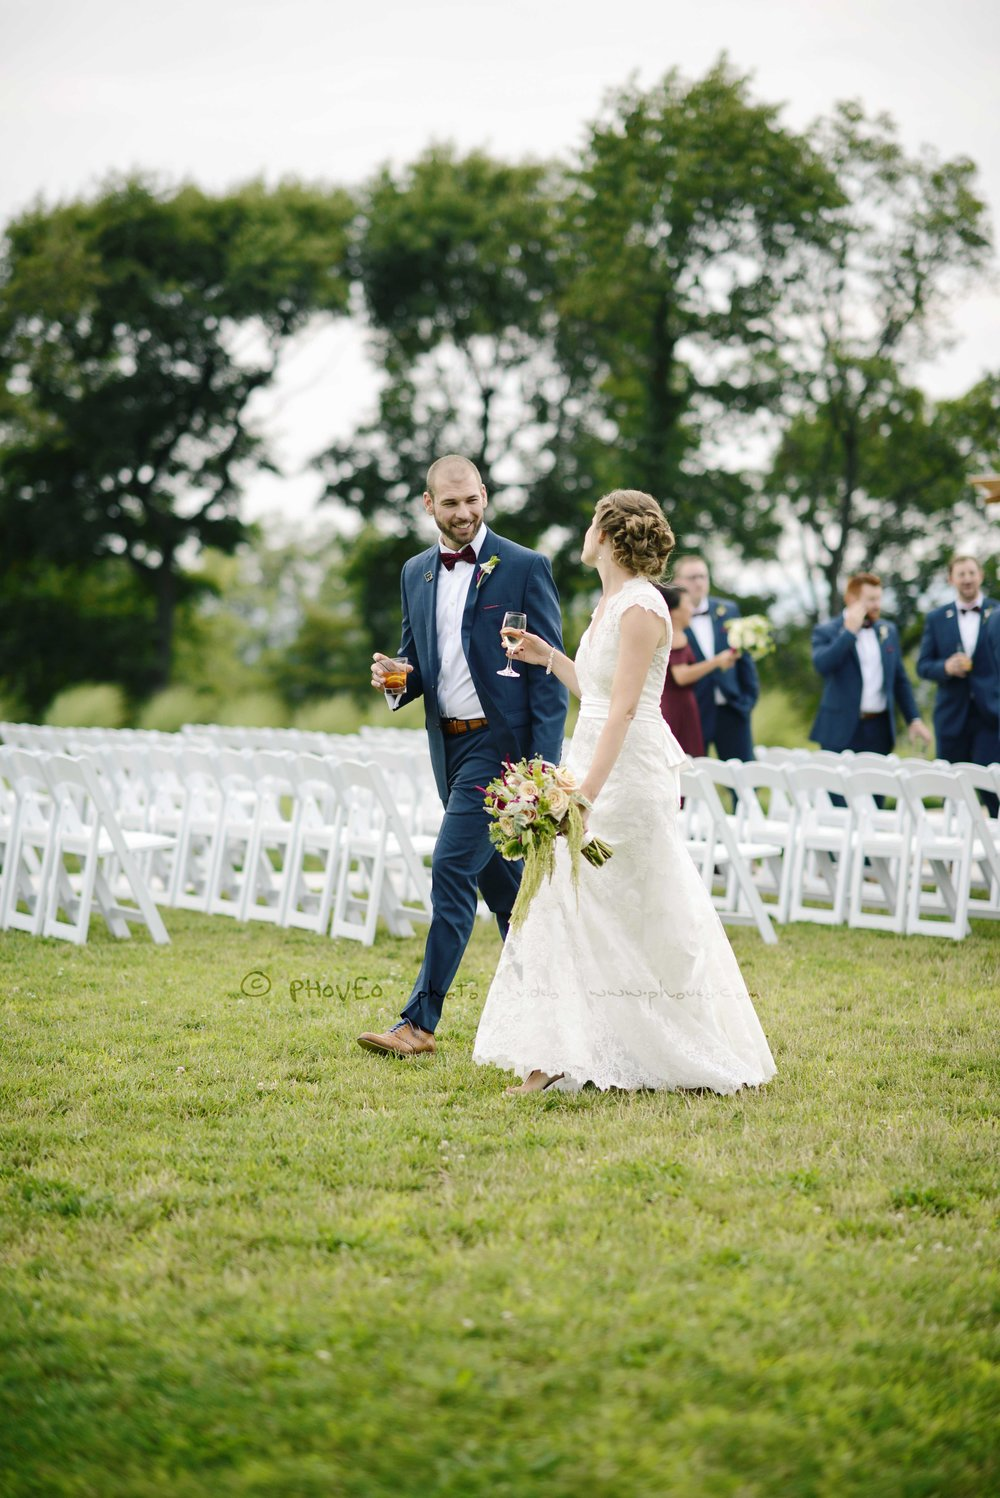 WM_20170812_Lauren+Sean_160.jpg